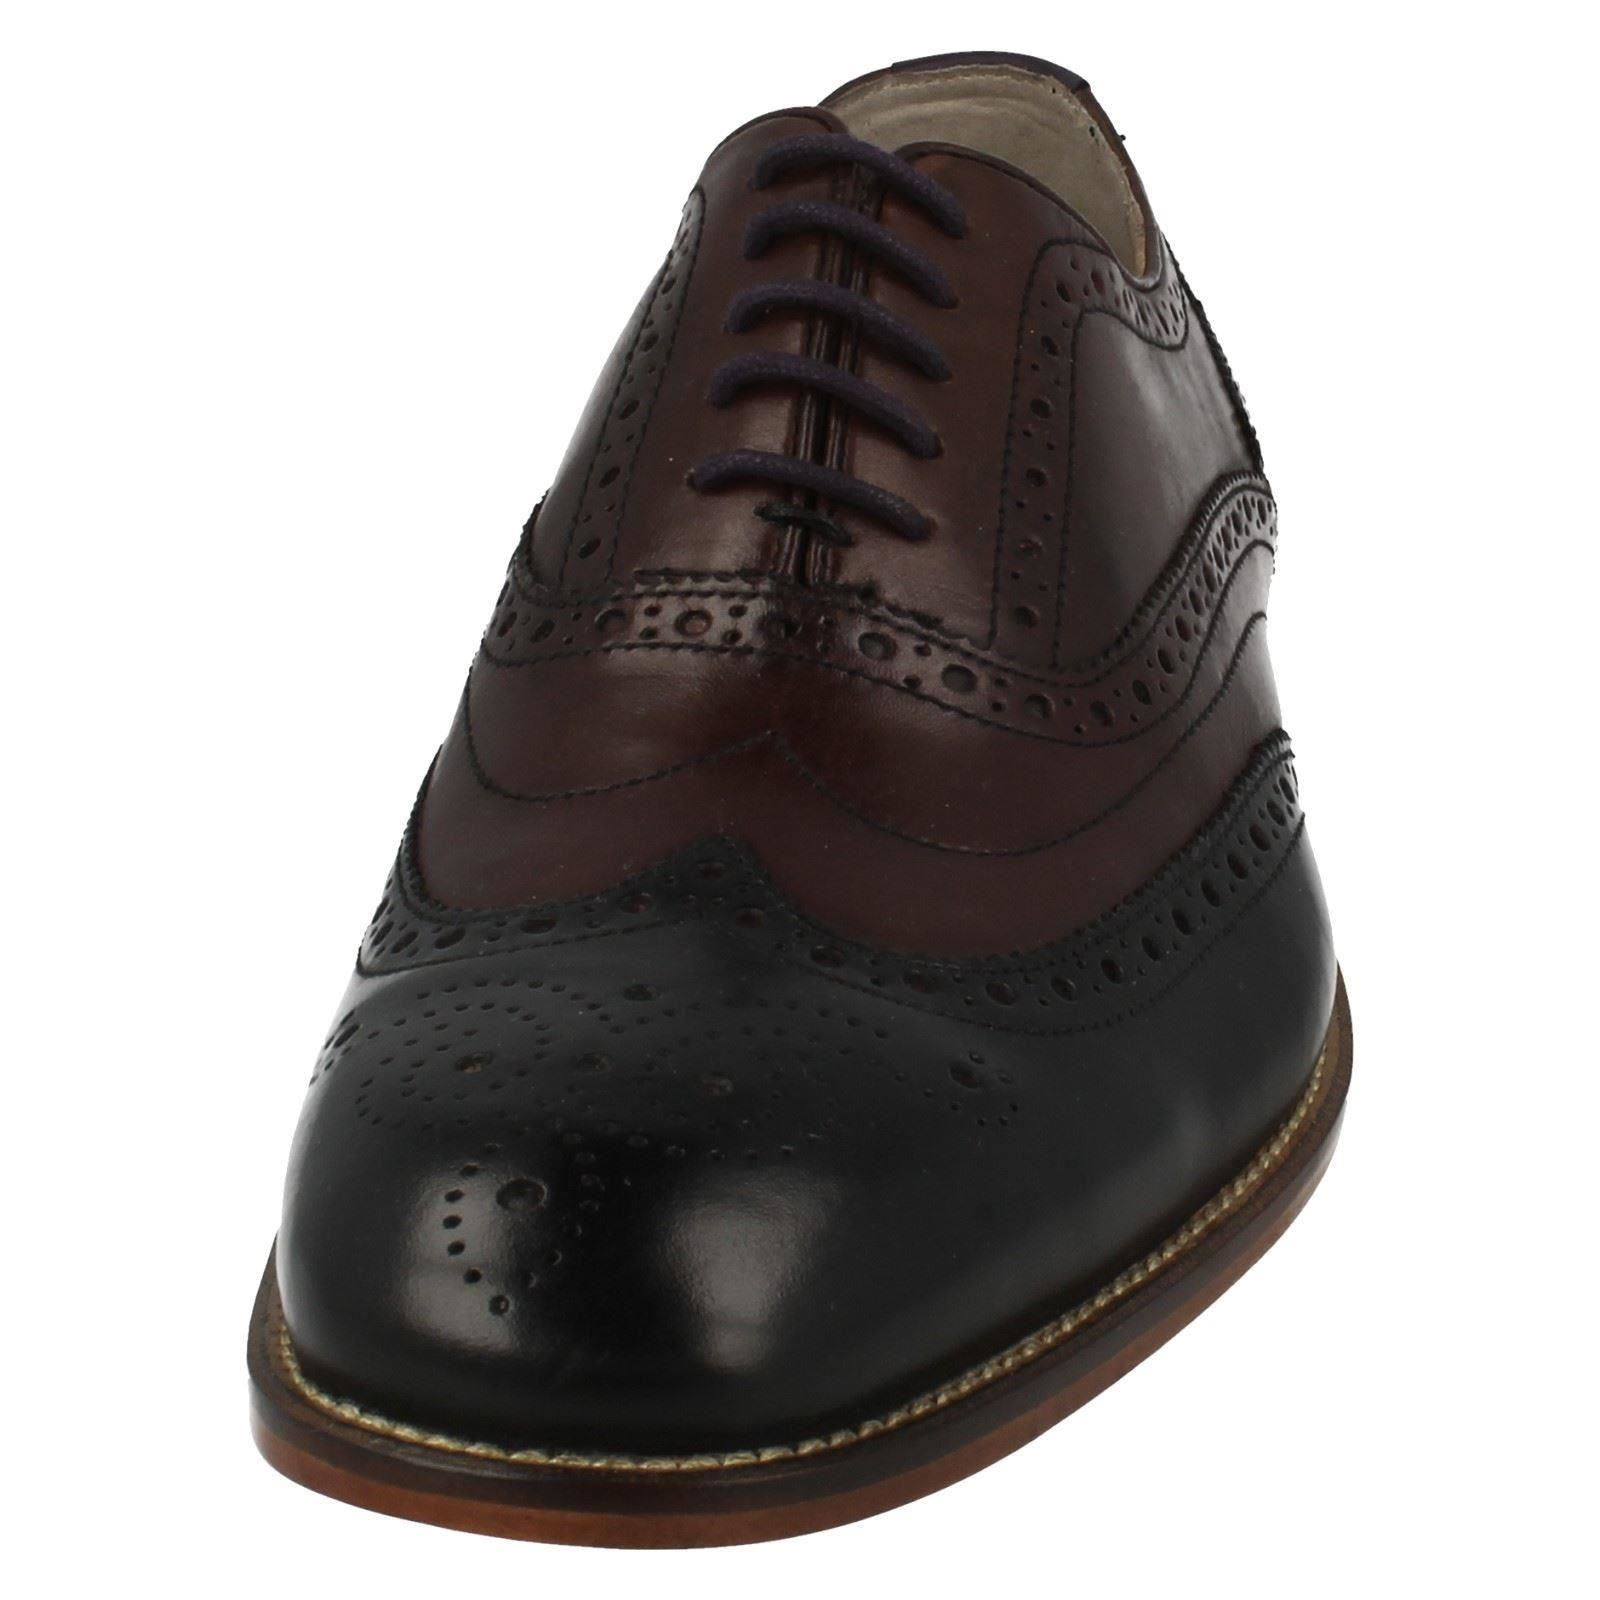 Mens Clarks Penton Limit Formal Brogues